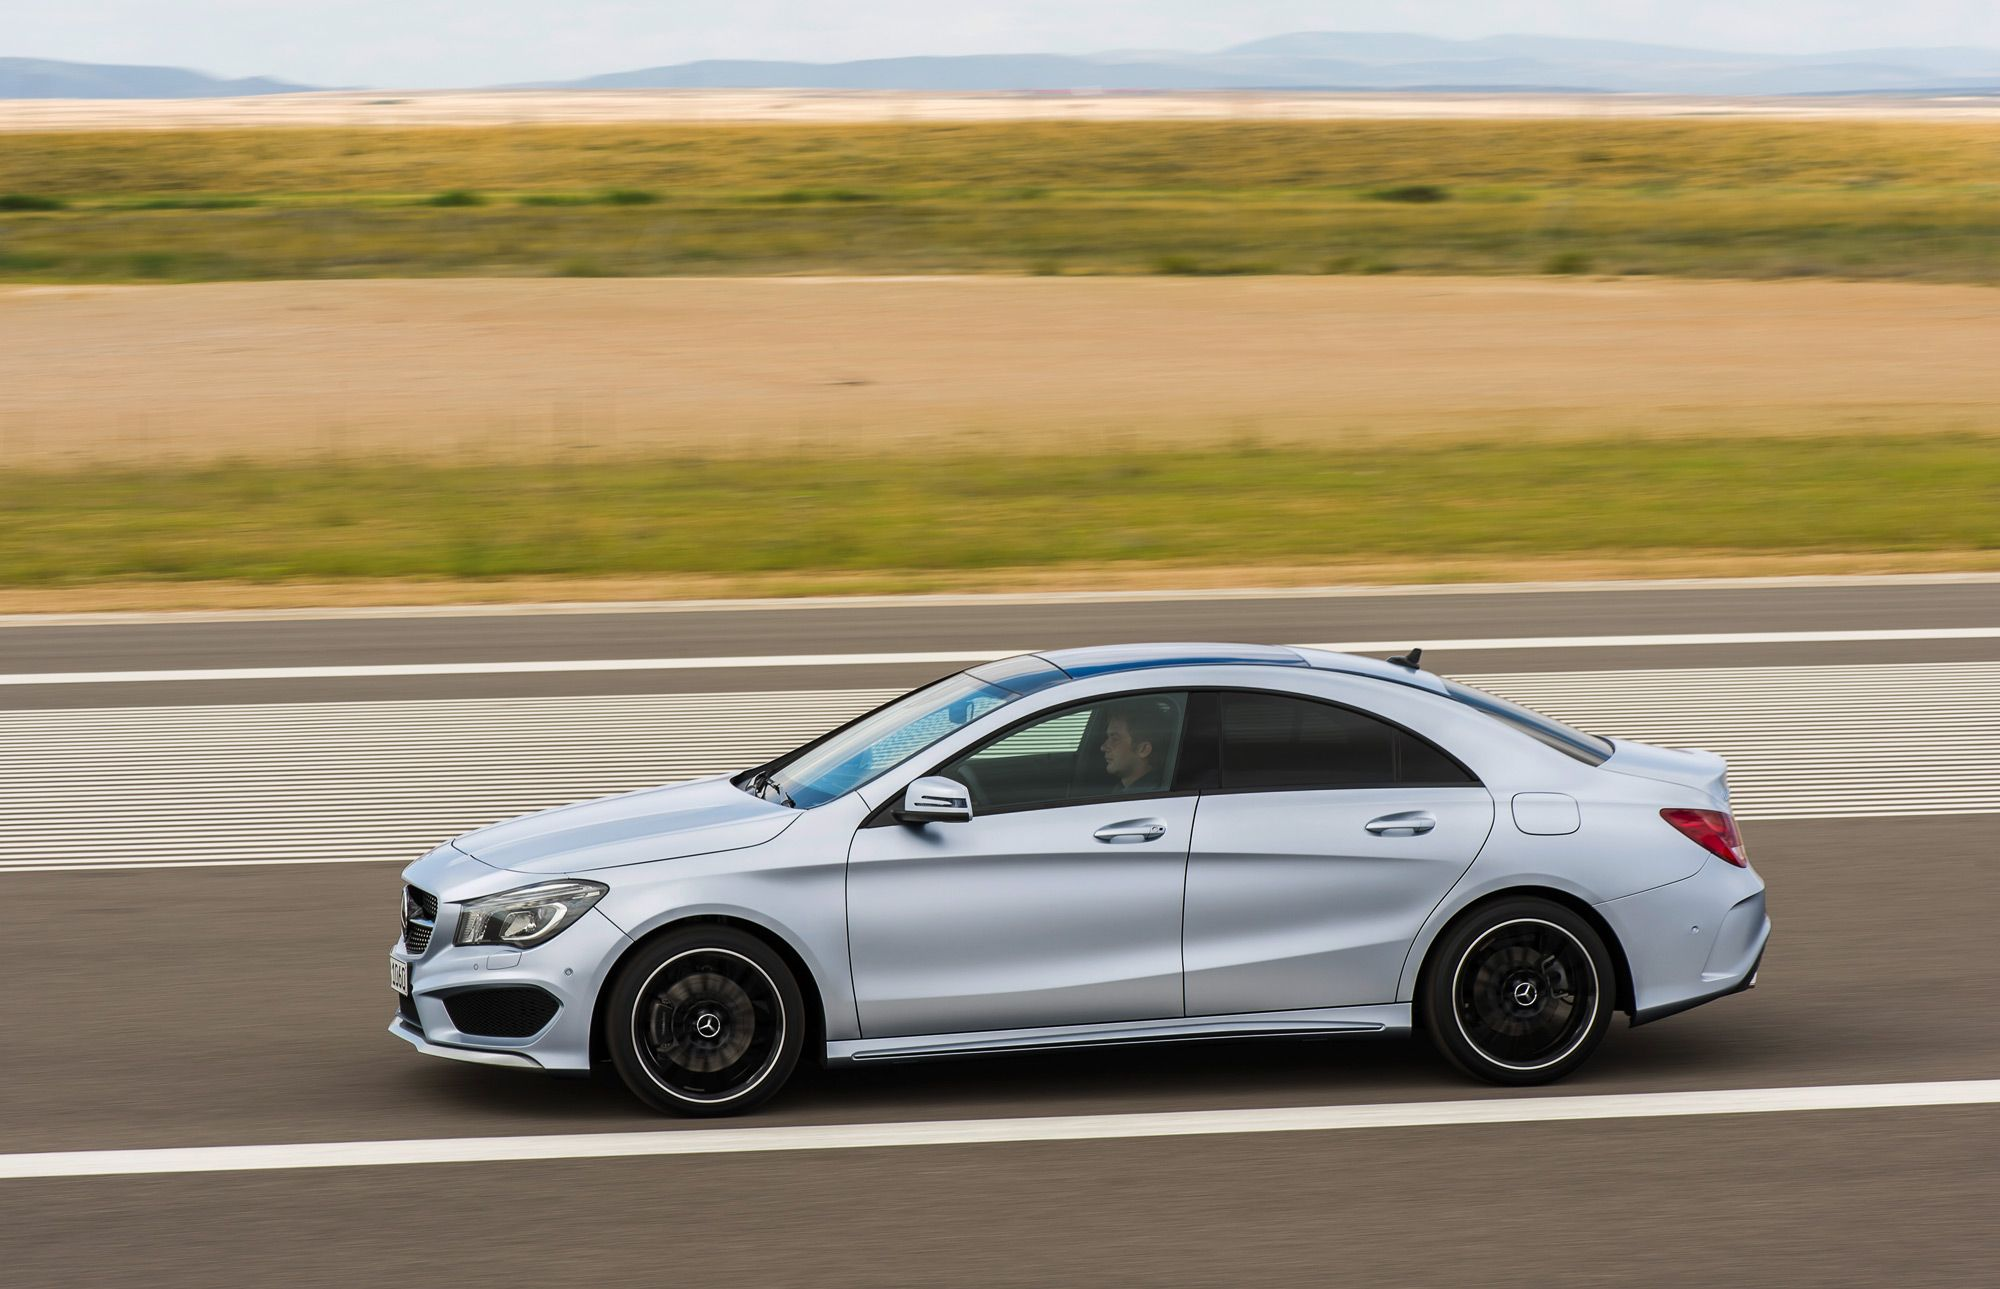 2014 Mercedes Benz Cla S Base Price Of 30 825 Revealed In Super Bowl Ad Mercedes Benz Mercedes Benz Models Mercedes